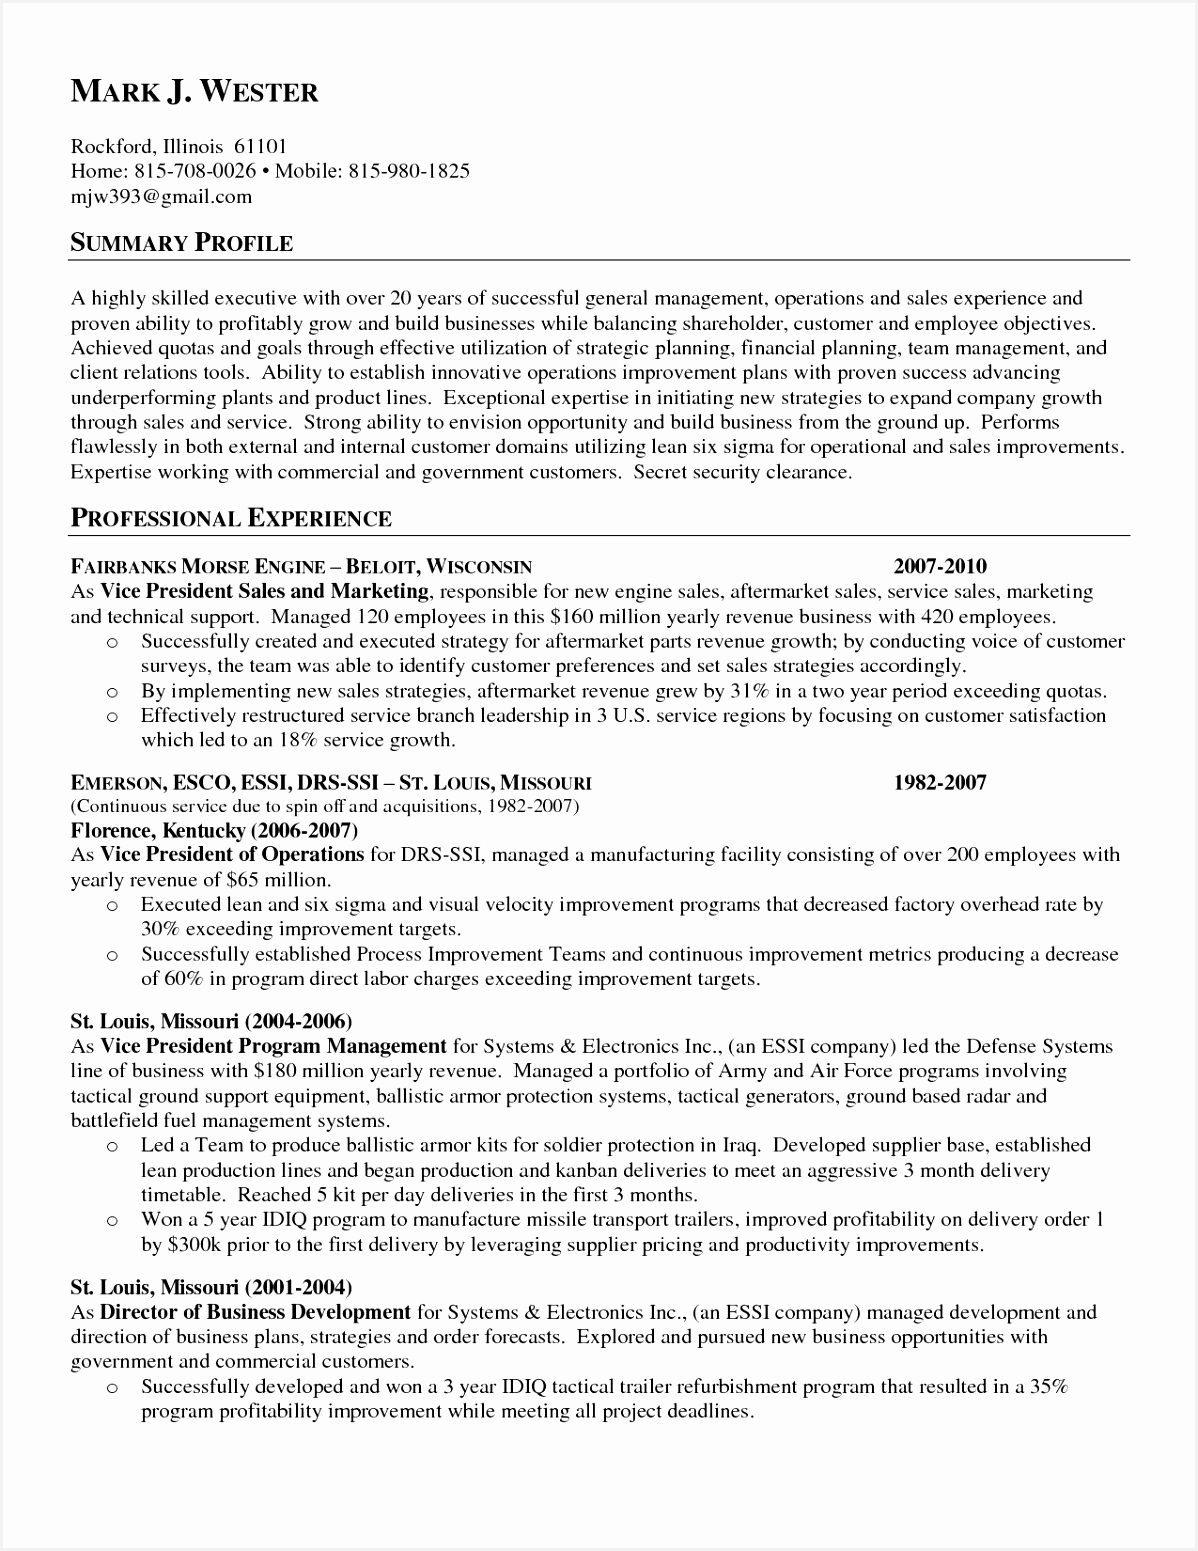 Resume Objective General Labor Kkxne Awesome Resume Examples for General Labor15511198